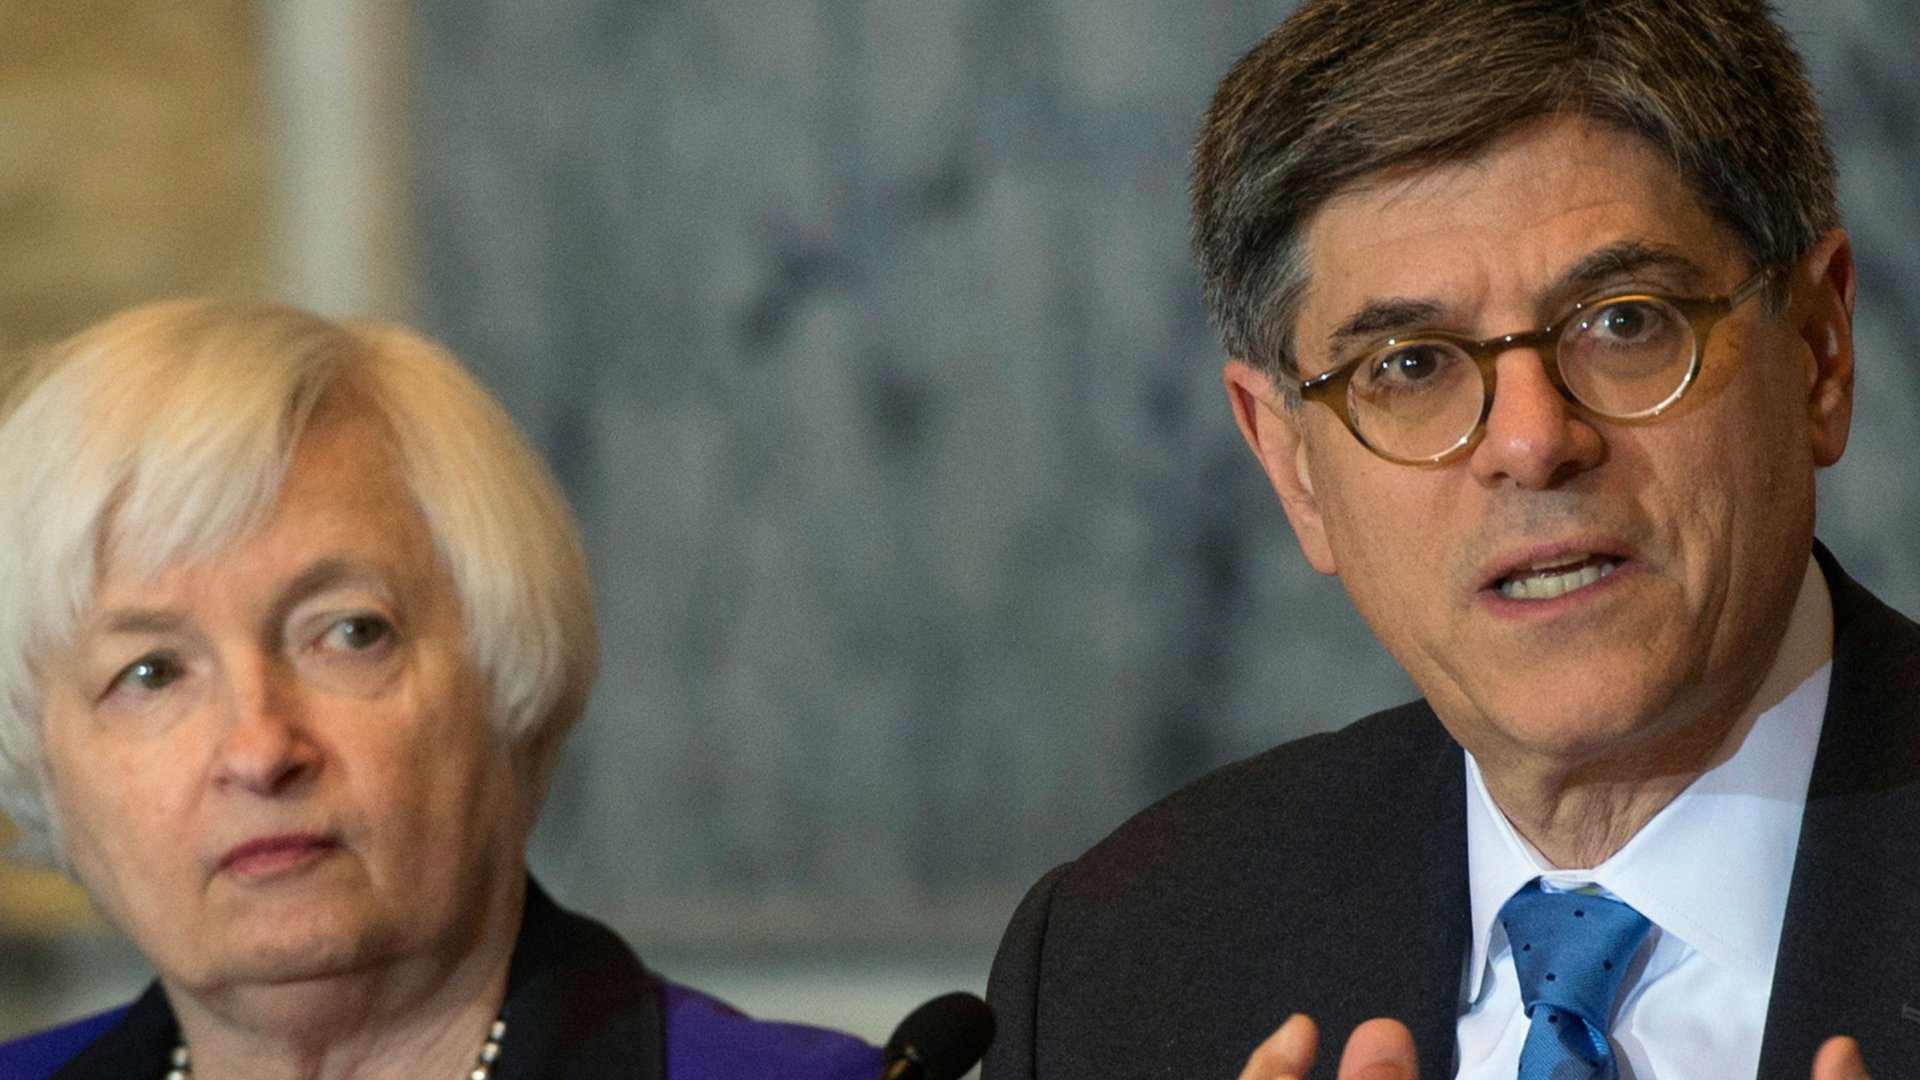 Secretary of the Treasury and Council Chairperson Jack Lew speaks during the Financial Stability Oversight Council along with Federal Reserve Chair Janet Yellen, at the Treasury Department in Washington, Wednesday, Nov. 16, 2016.